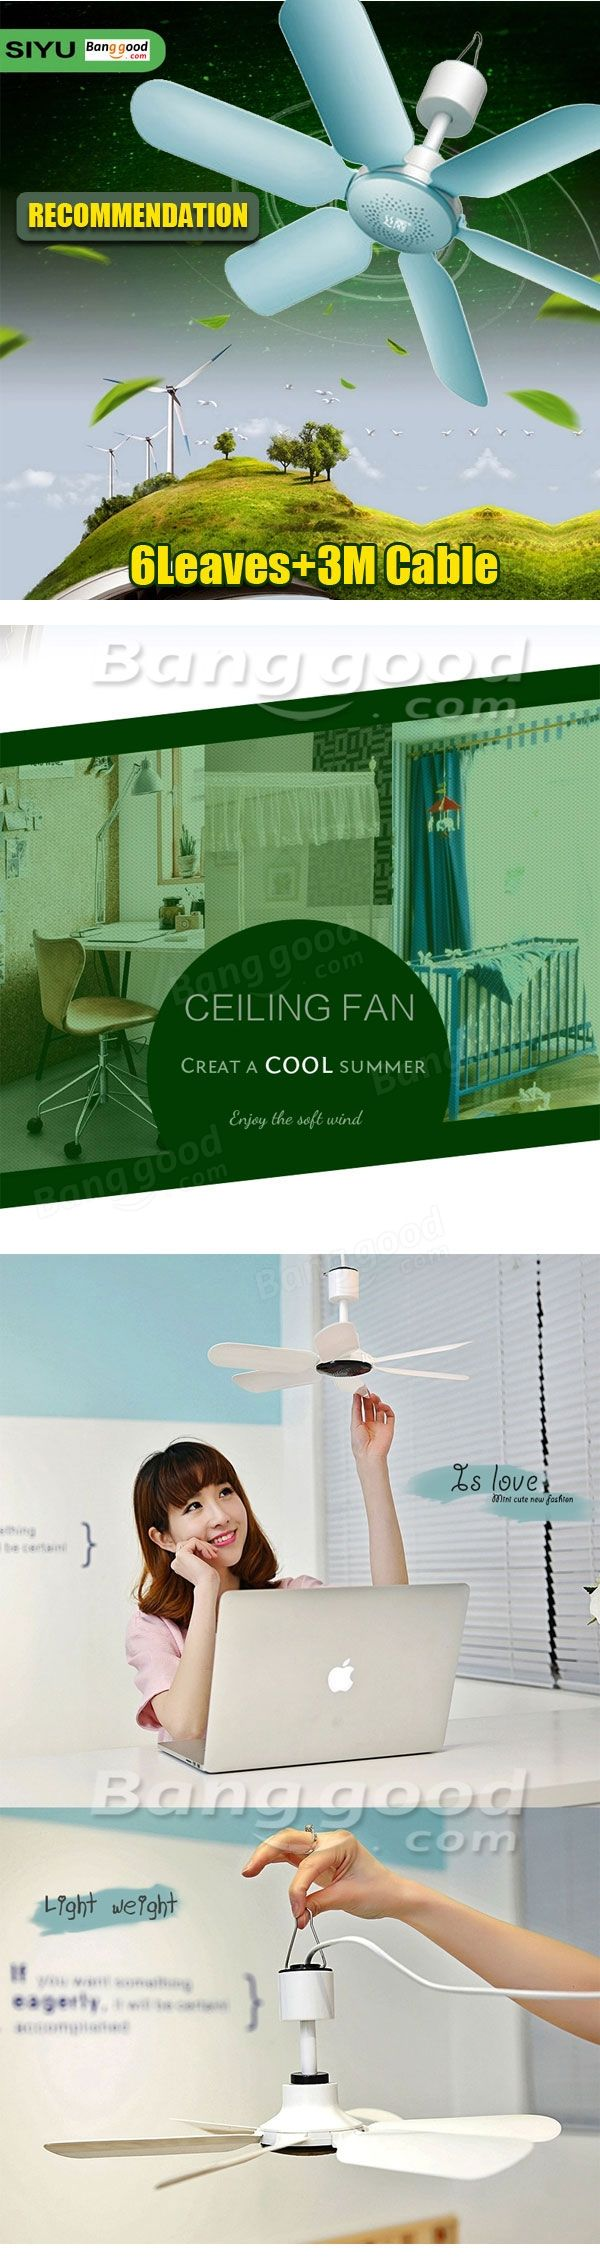 220V 7W Ultra Quiet 6 Leaves Mini Electric Hanging Ceiling Fan Anti Mosquitoes Breeze Cooler Try Me at Banggood